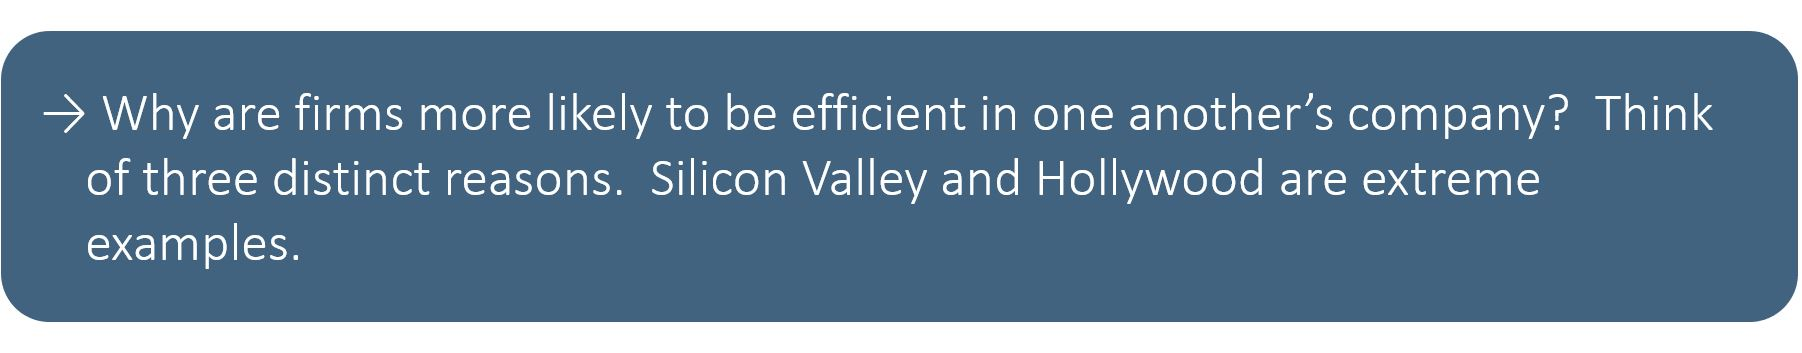 Why are firms more likely to be efficient in one another's company? Think of three distinct reasons. Silicon Valley and Hollywood are extreme examples.